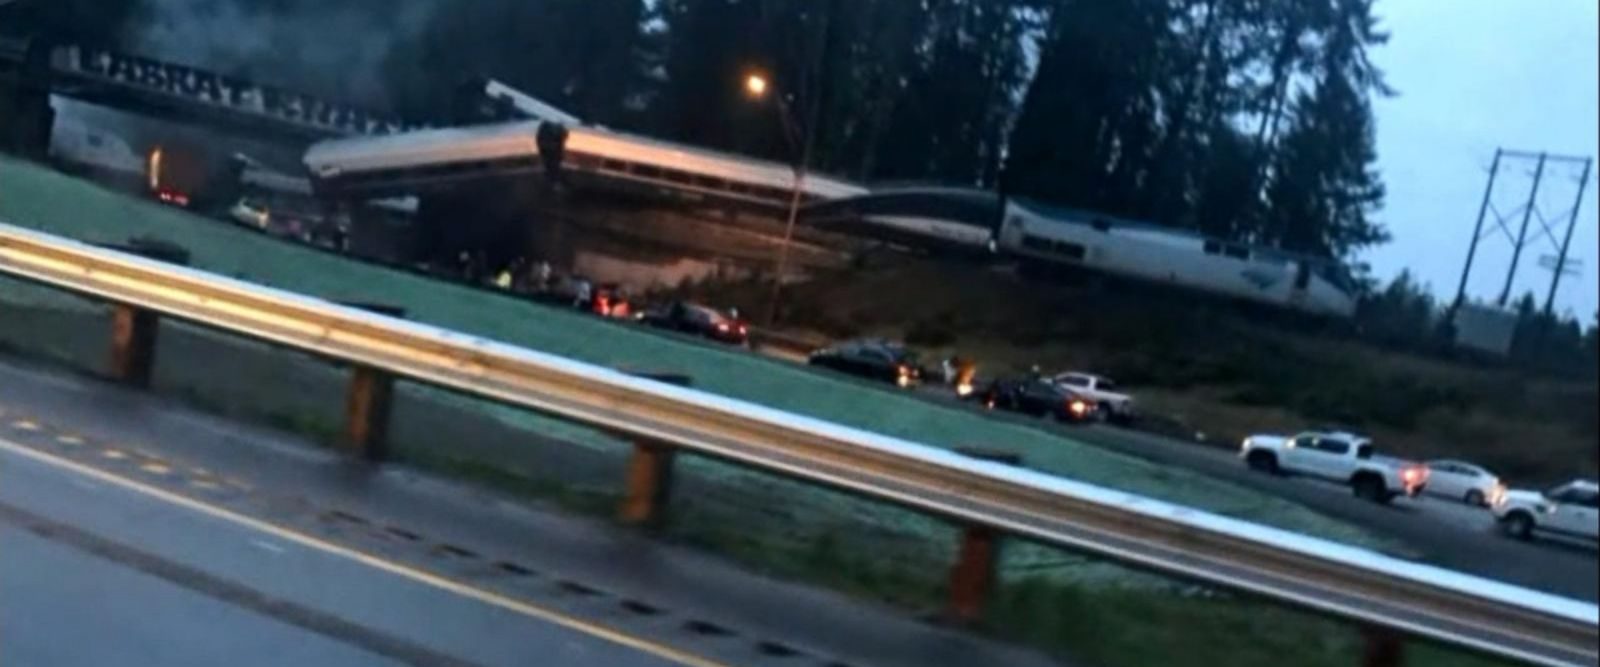 """VIDEO: According to the Pierce County Sheriff's Office, there were """"injuries and casualties"""" in the incident but it was not clear how many or how severe."""